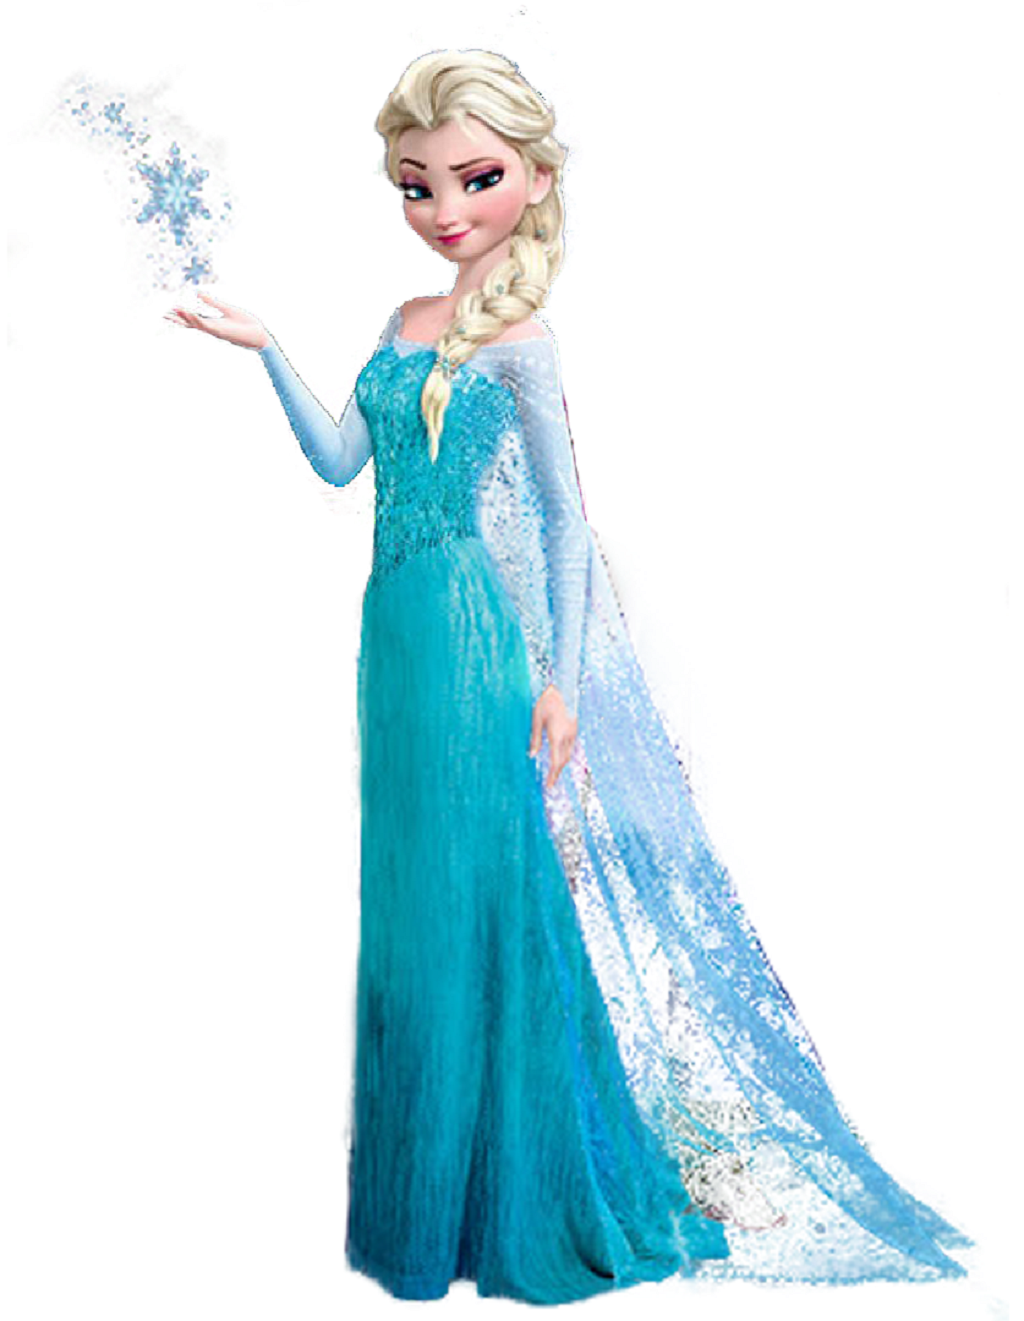 Elsa in Frozen Wallpapers Best Wallpapers FanDownload 1024x1321